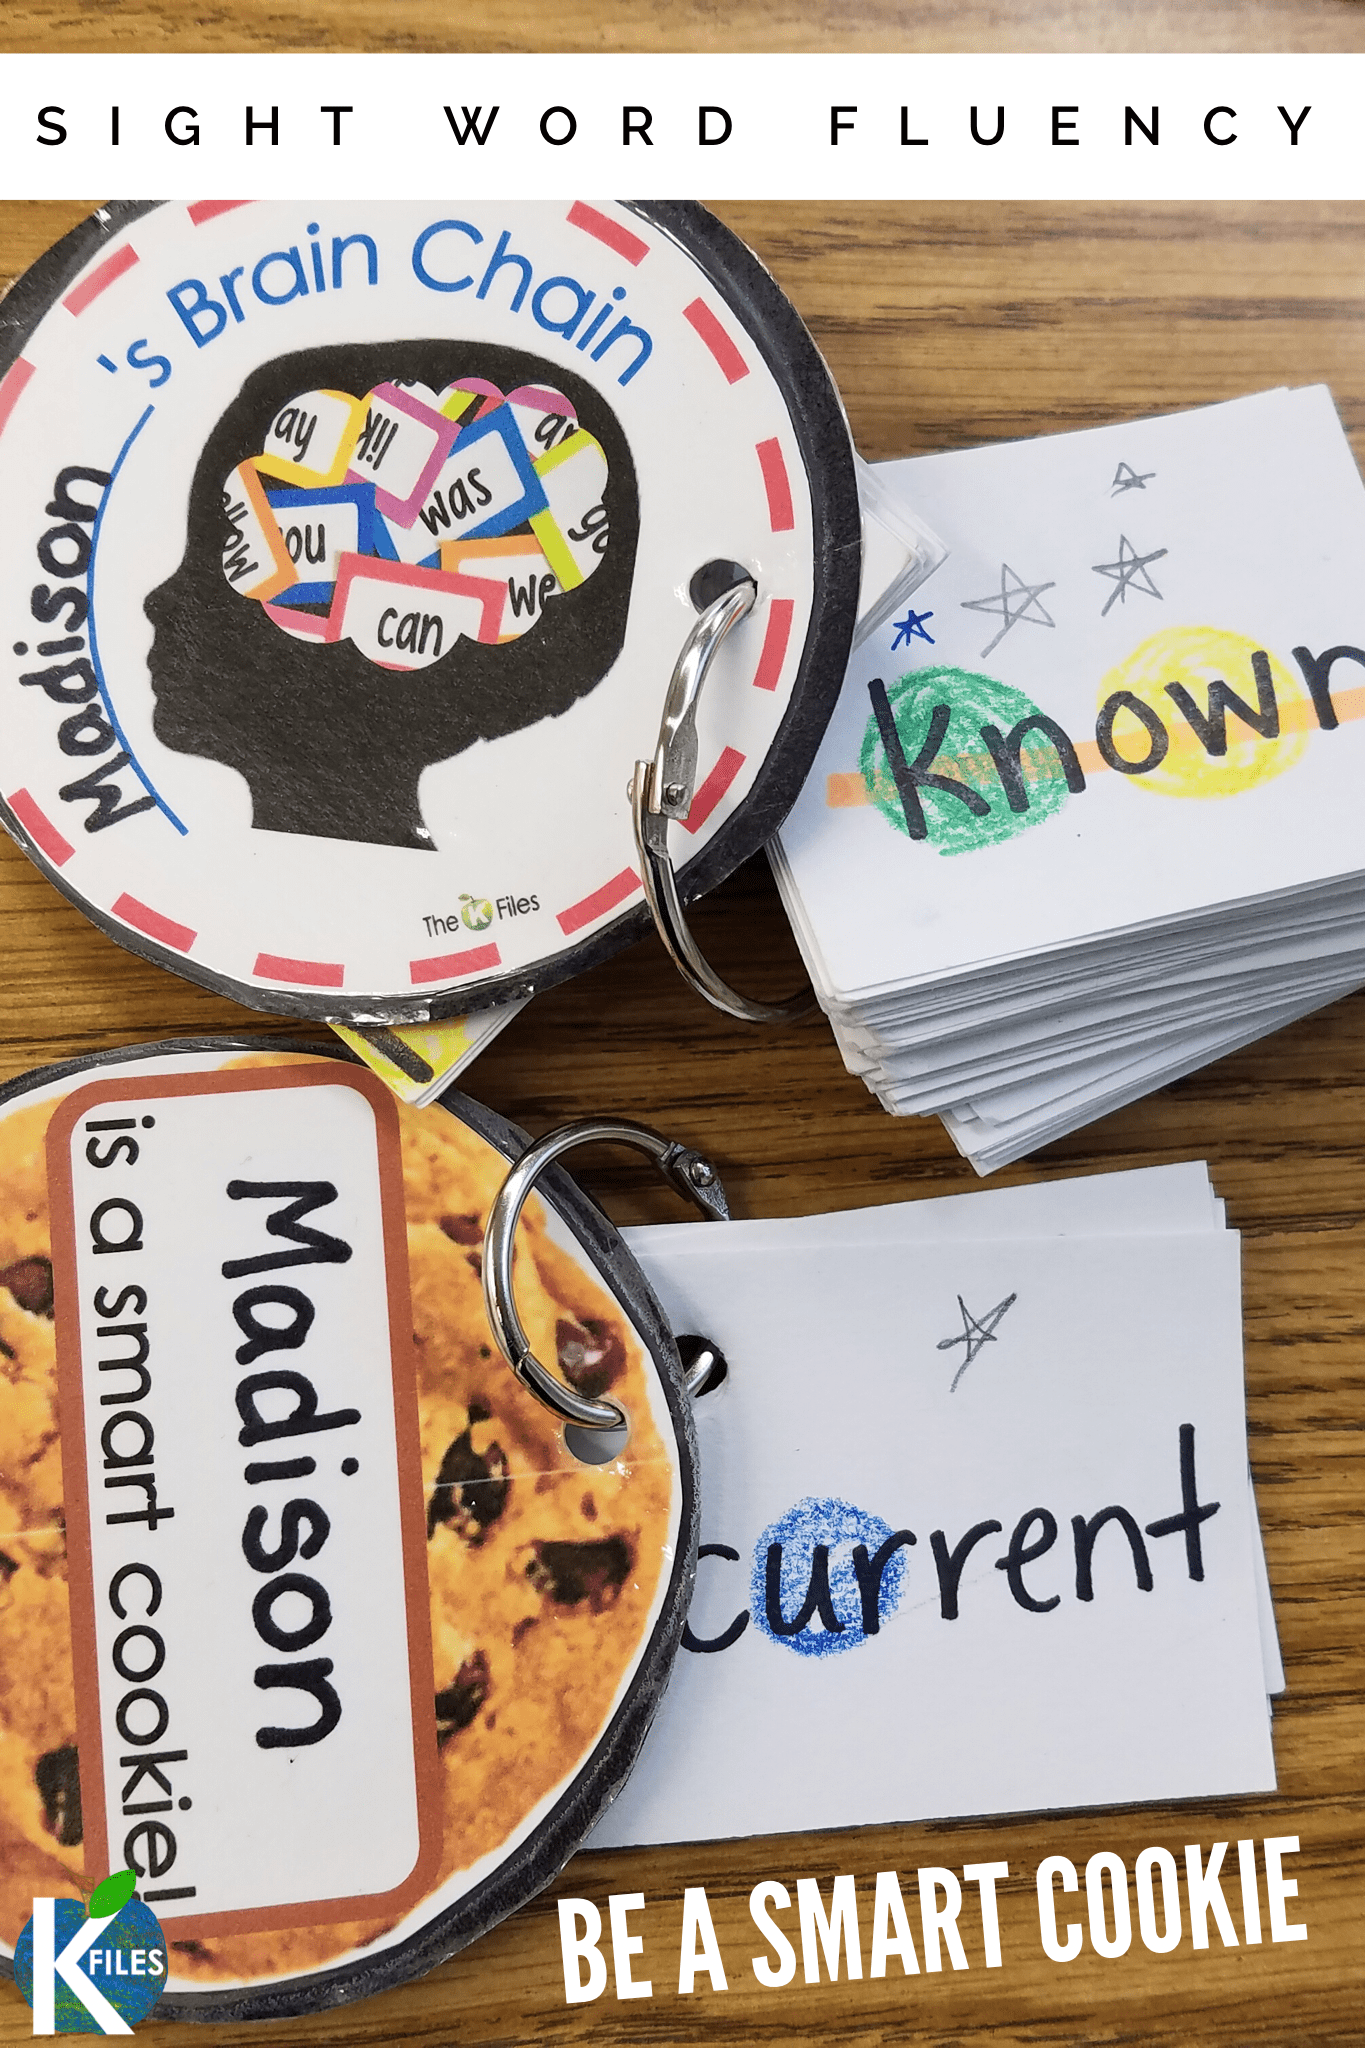 Are you looking to improve your student's sight word fluency? Well, be a smart cookie with these sight word rings, with a fun sight word incentive! Students will be both engaged and motivated with these sight word activities on rings. Meet with your students once a week and assign them with a differentiated sight word list using Fry's or Dolch sight word lists. Watch their sight word knowledge grow in no time. #sightwords #fluency #wordwall #literacy #kindergarten #firstgrade